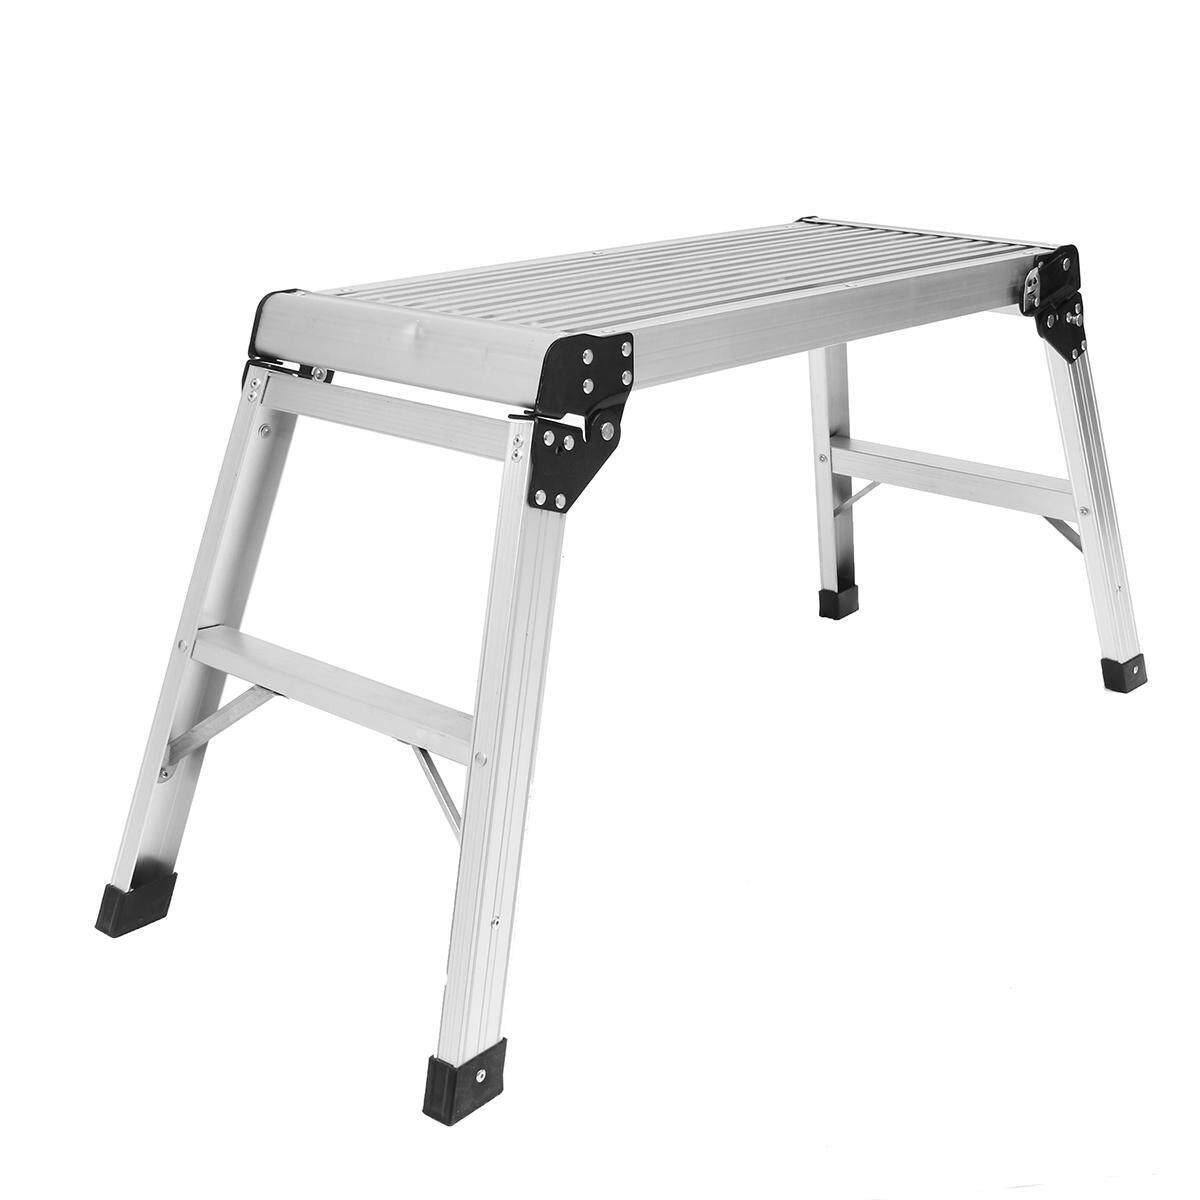 Ladder Work Platform Aluminium Bench Folding Elevated Step Metal Painting Car - intl